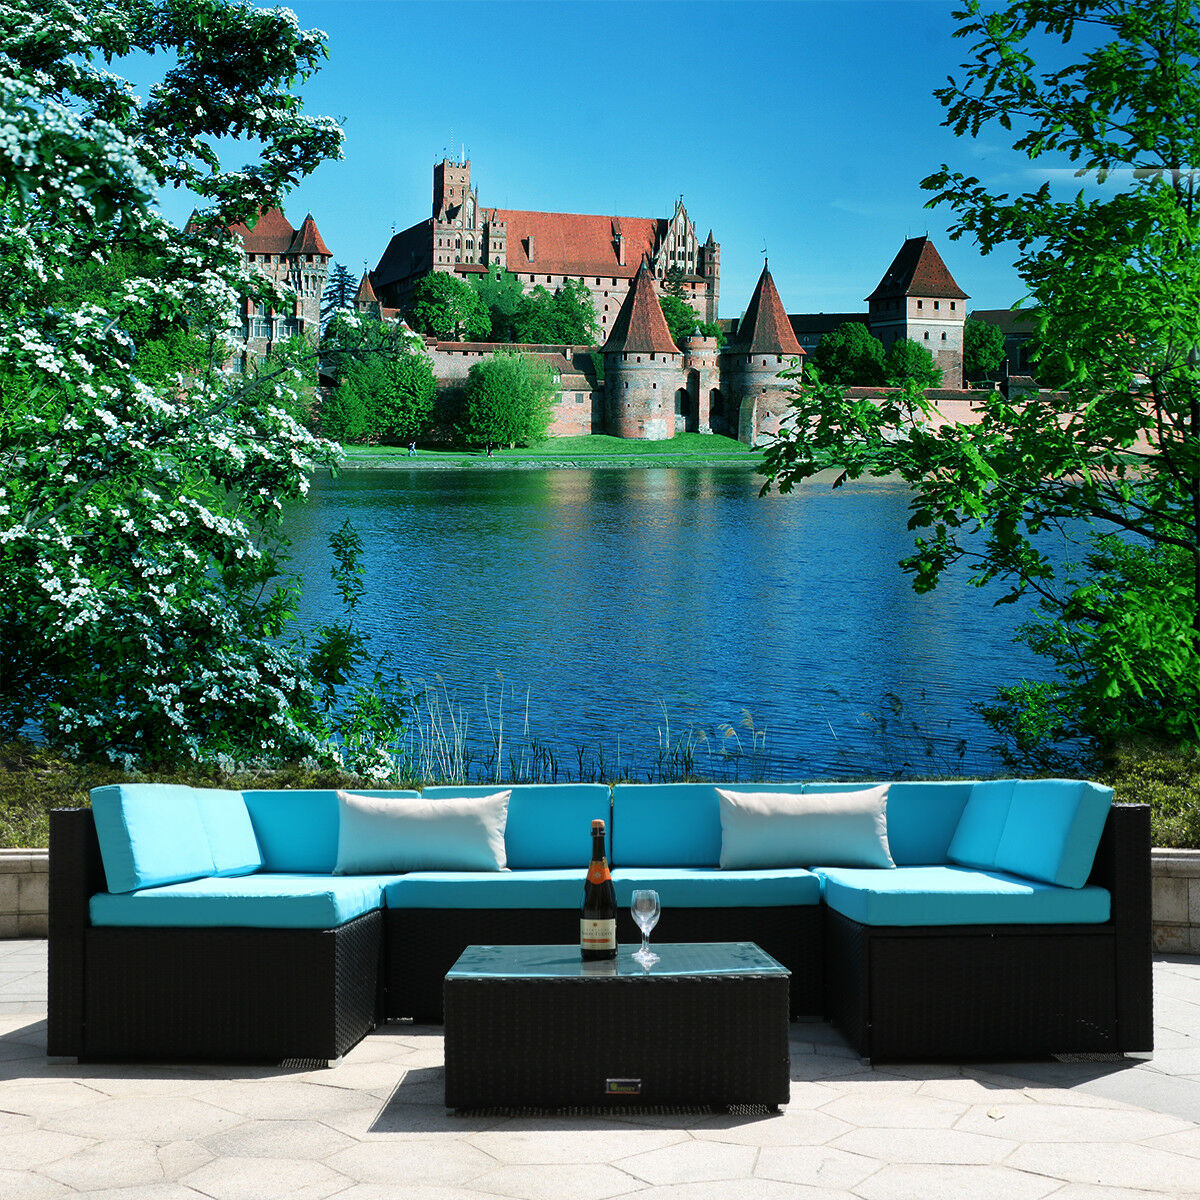 Garden Furniture - 7PC Patio Wicker Furniture Sofa Garden Rattan Set Sectional Cushion Seat Outdoor